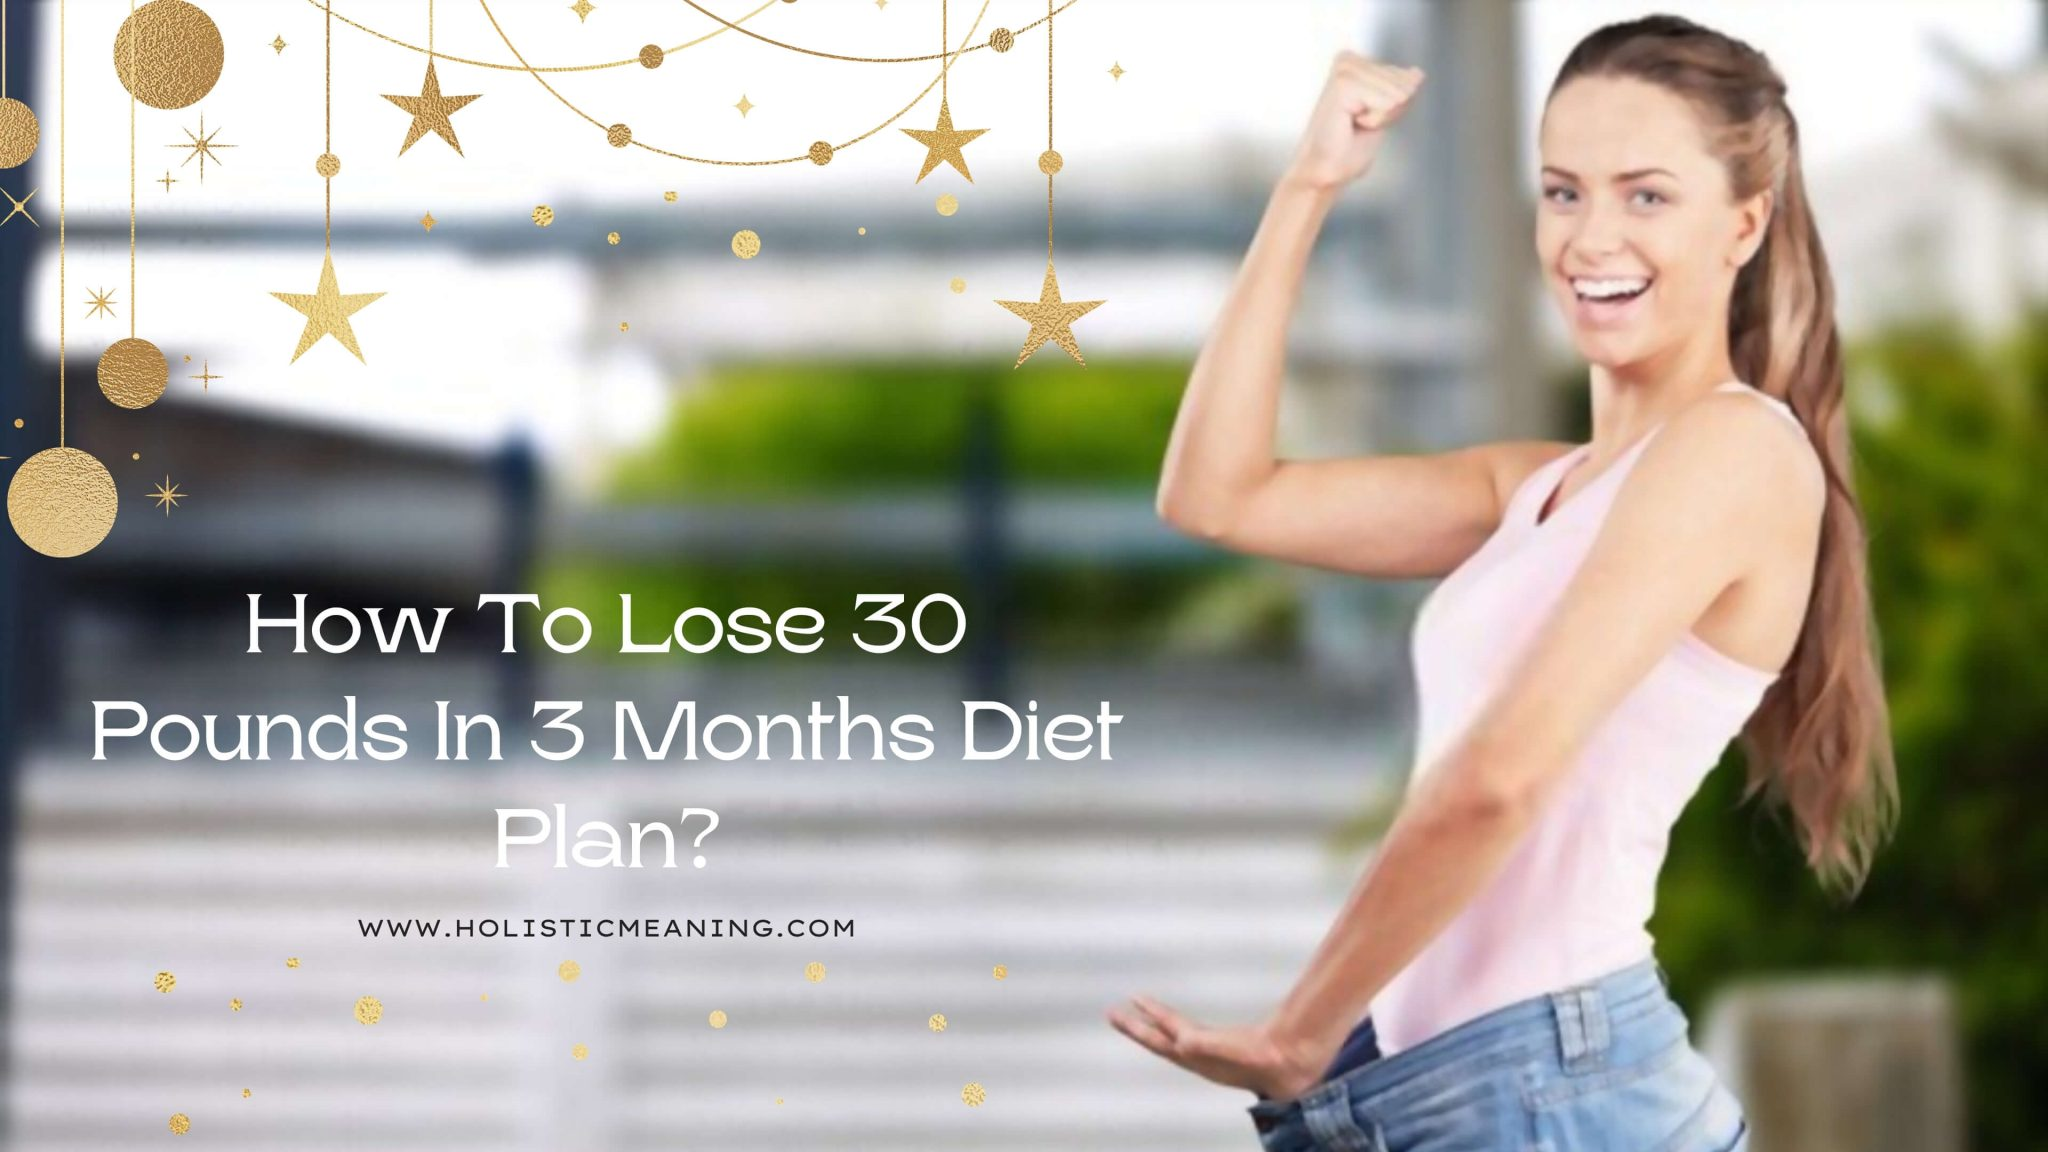 How To Lose 30 Pounds In 3 Months Diet Plan?